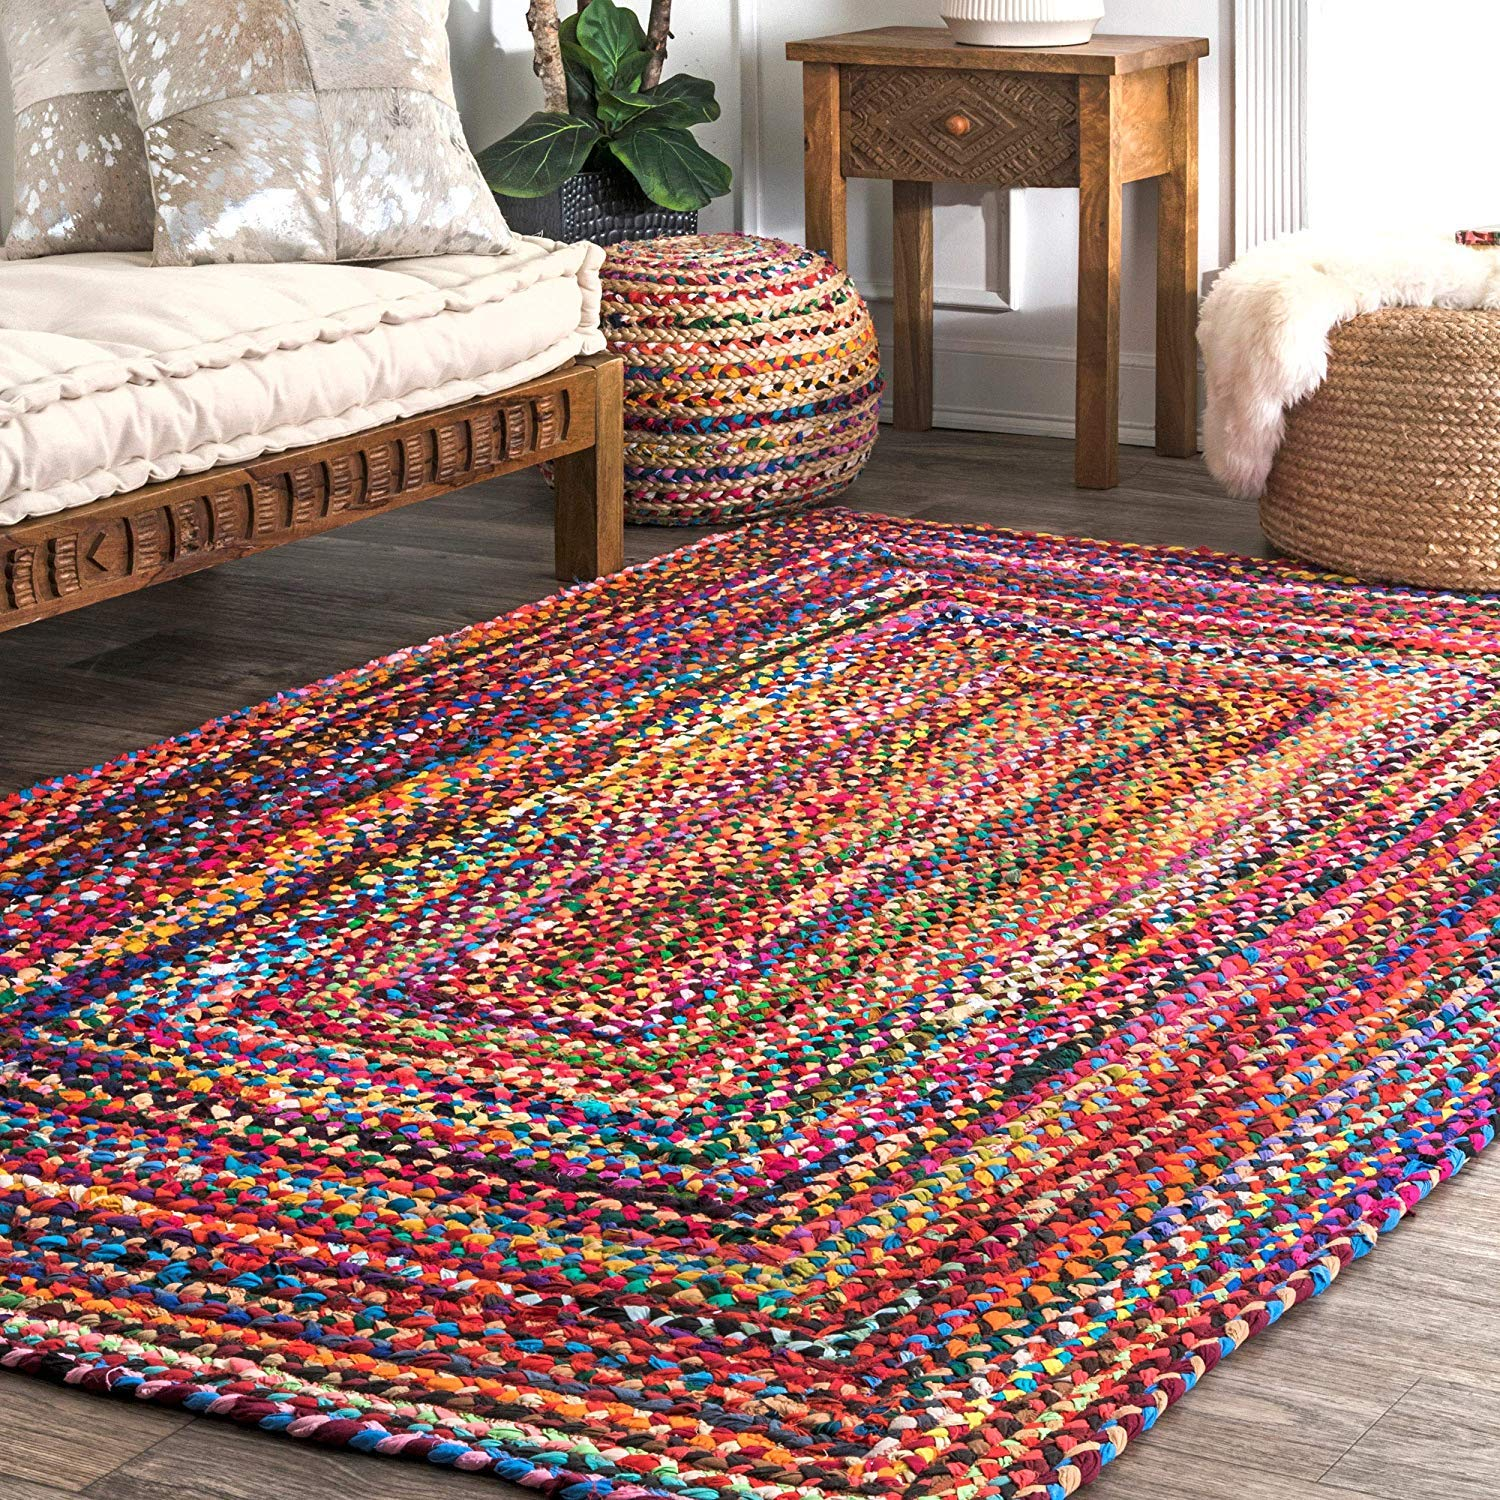 Rag Rugs Modern Braided Rug In Colorful Cotton Chindi